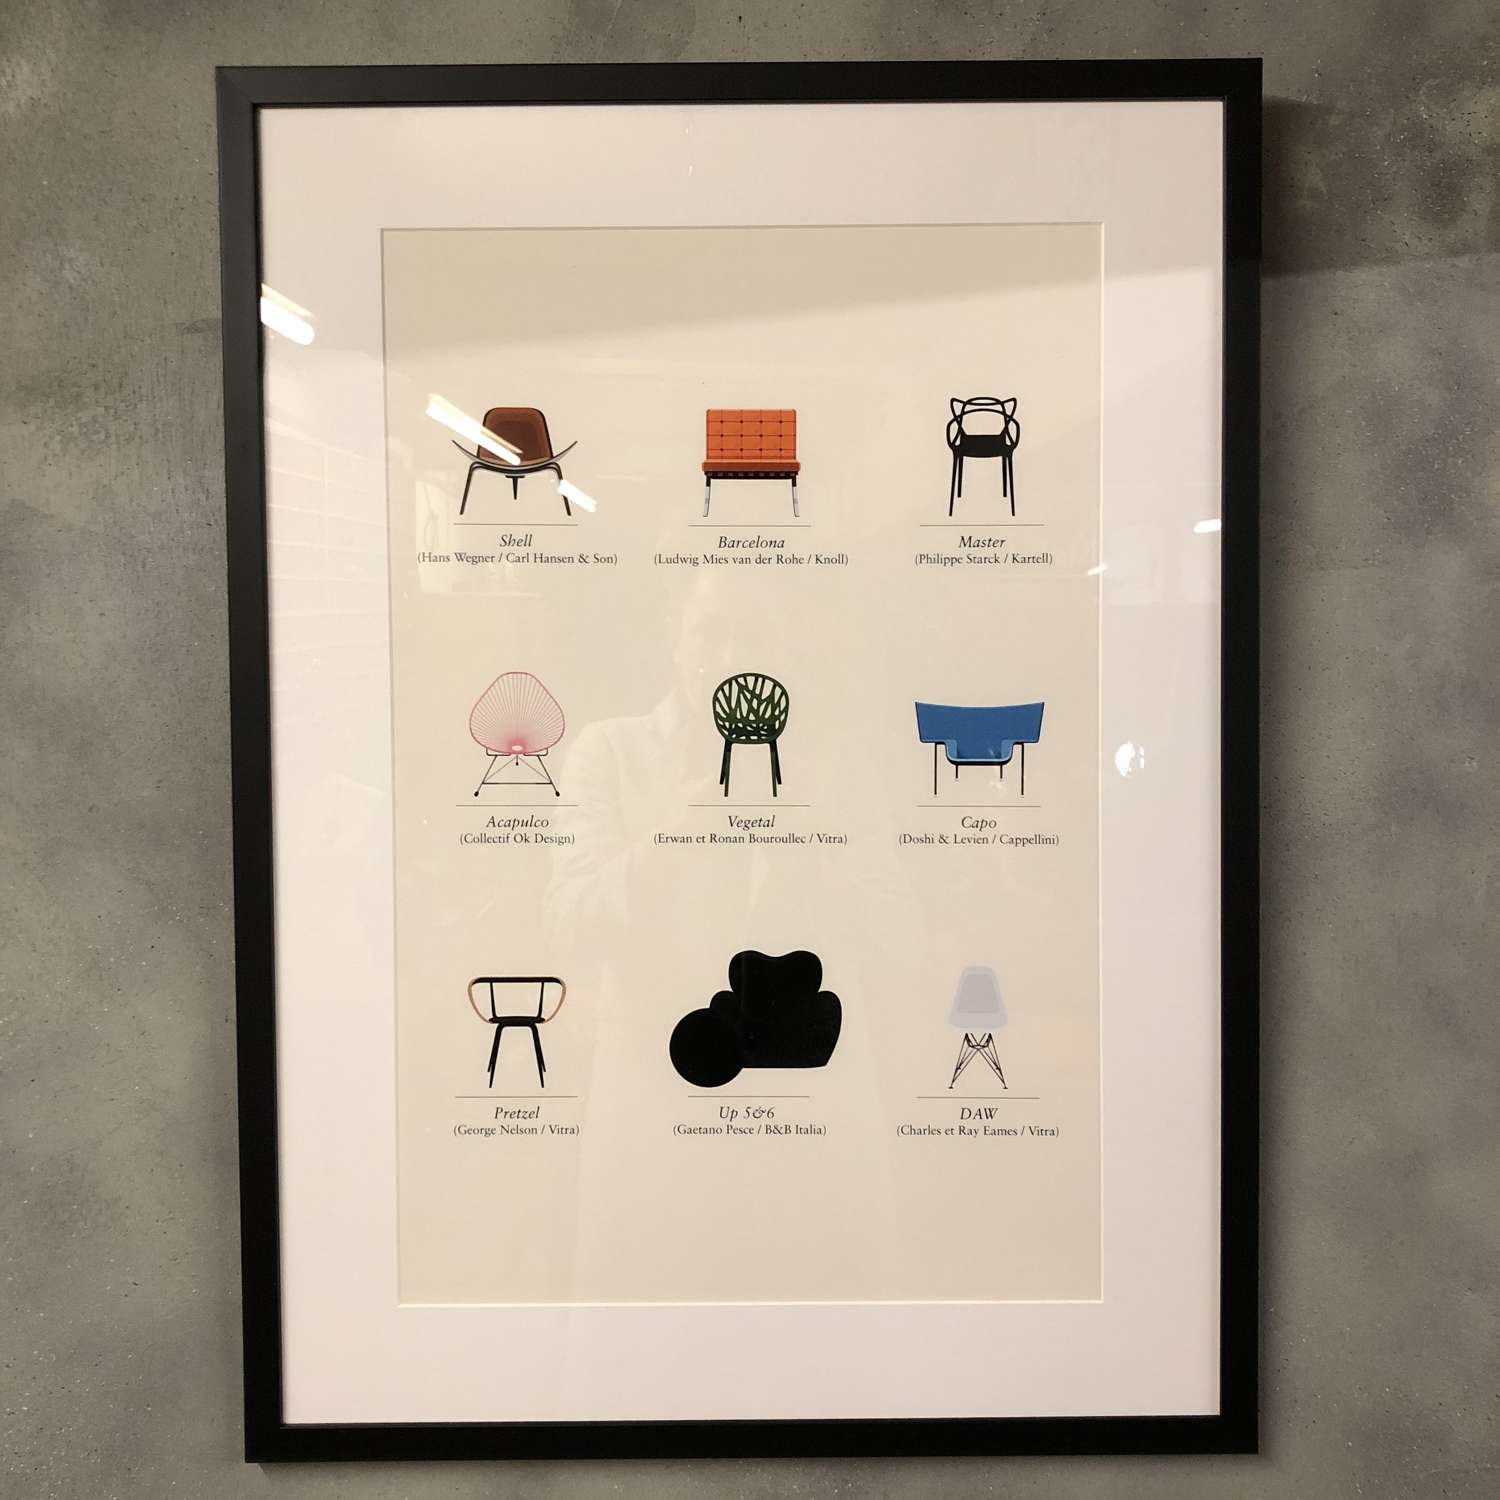 Iconic Chairs Framed Picture. Barcelona chair. Kartell.